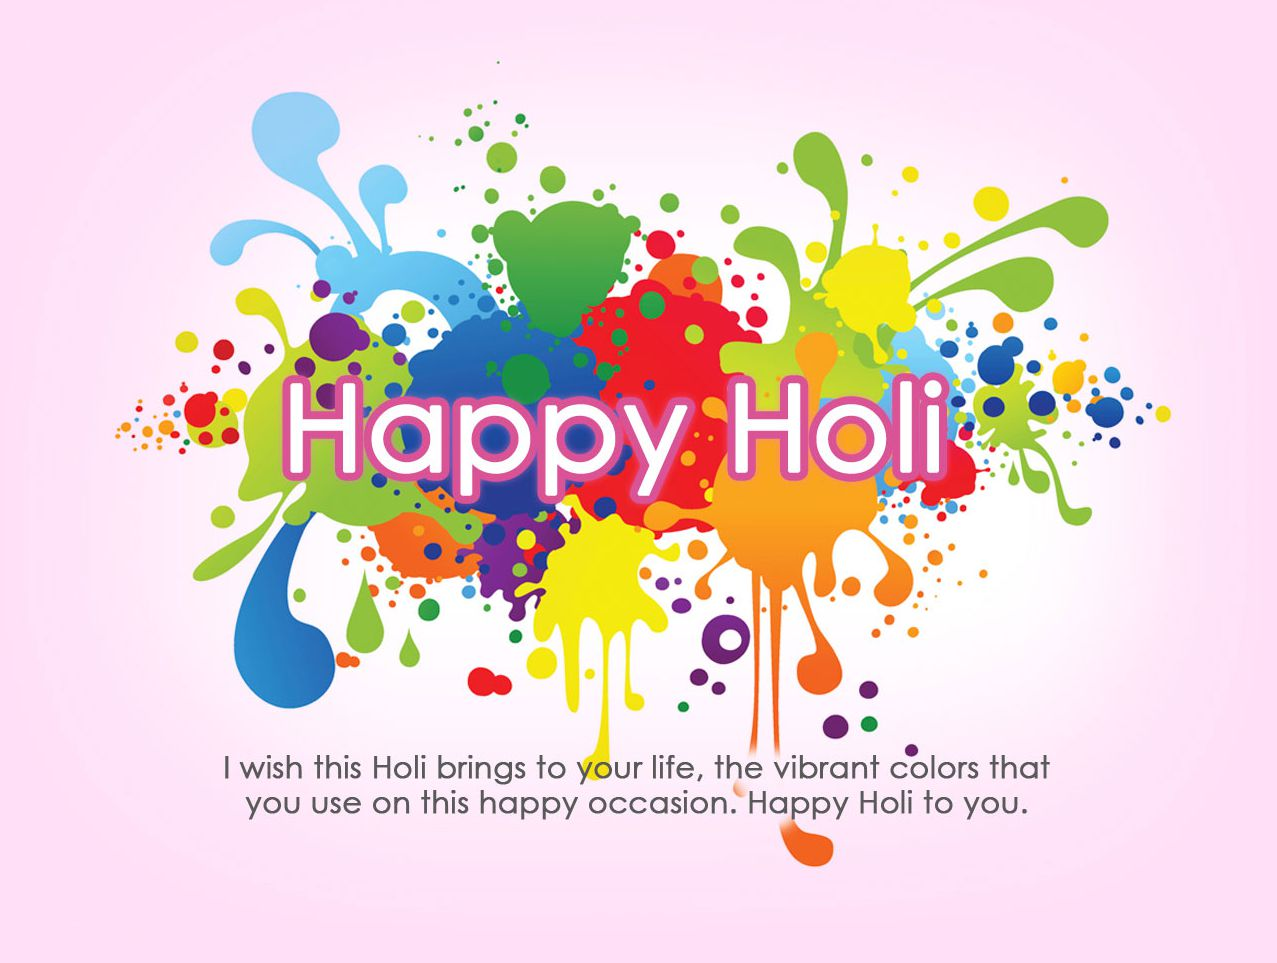 Happy holi images hd in hindi wallpapers photos pictures holi greeting hd image kristyandbryce Image collections